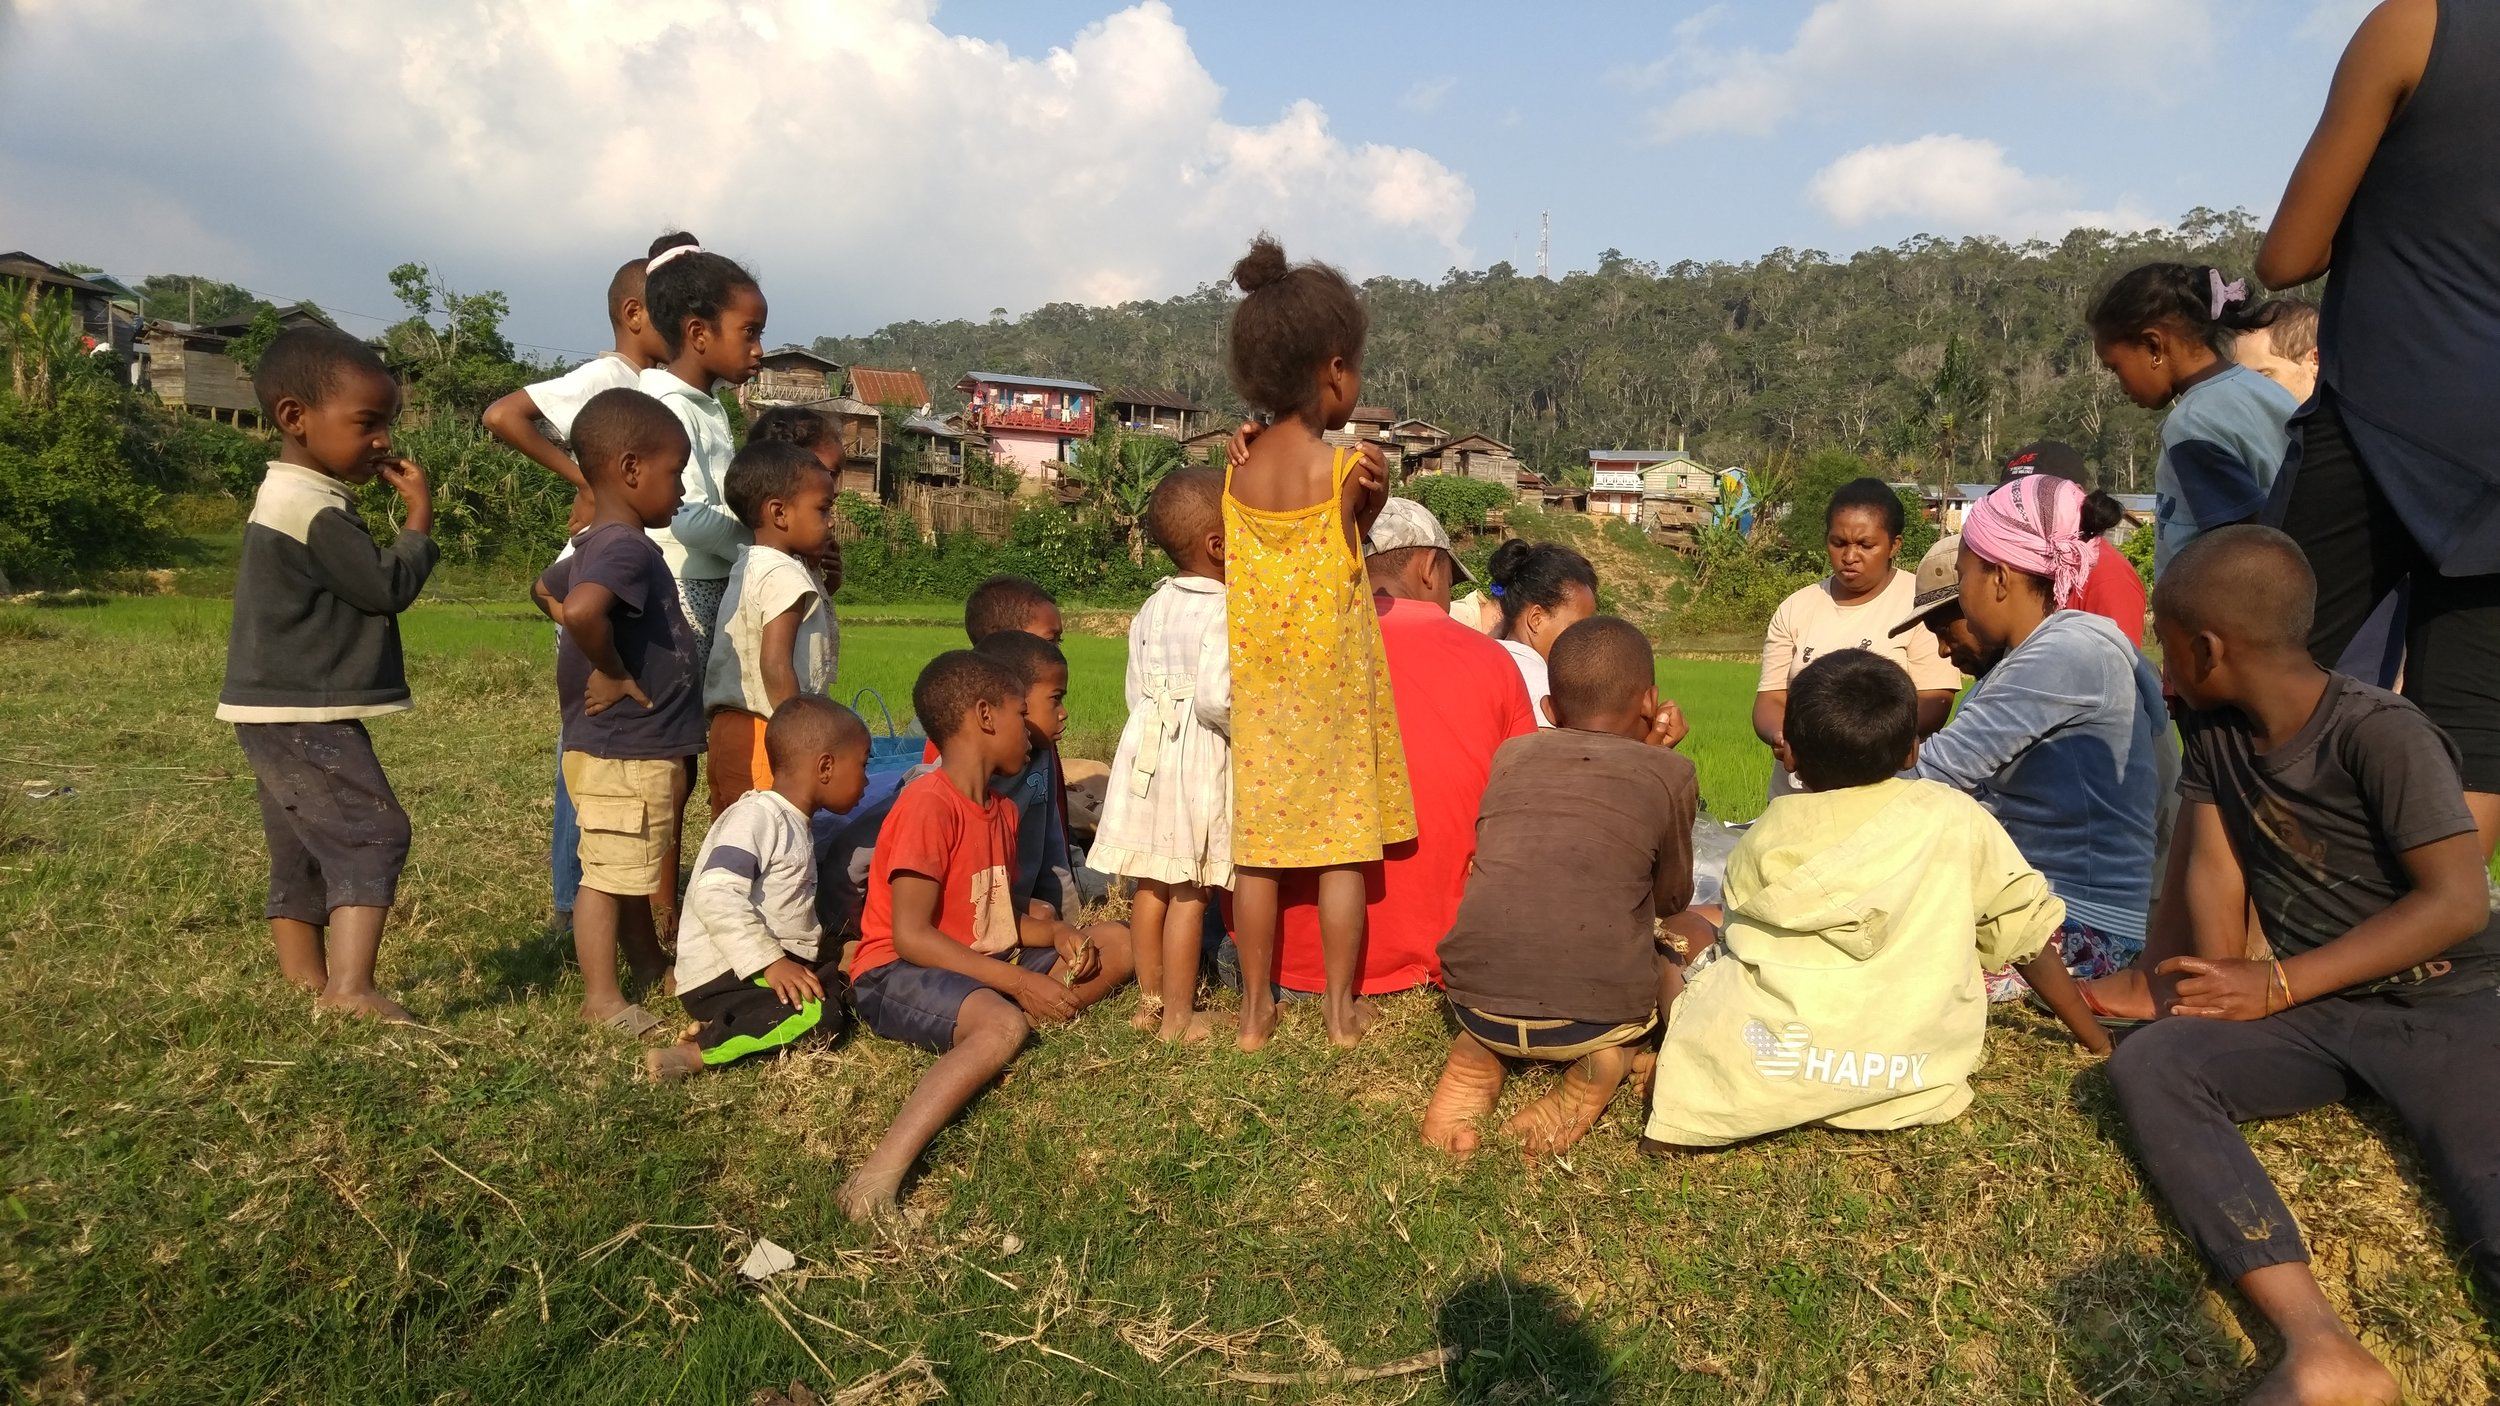 Children from the village observing the amphibian technicians swabbing frogs.